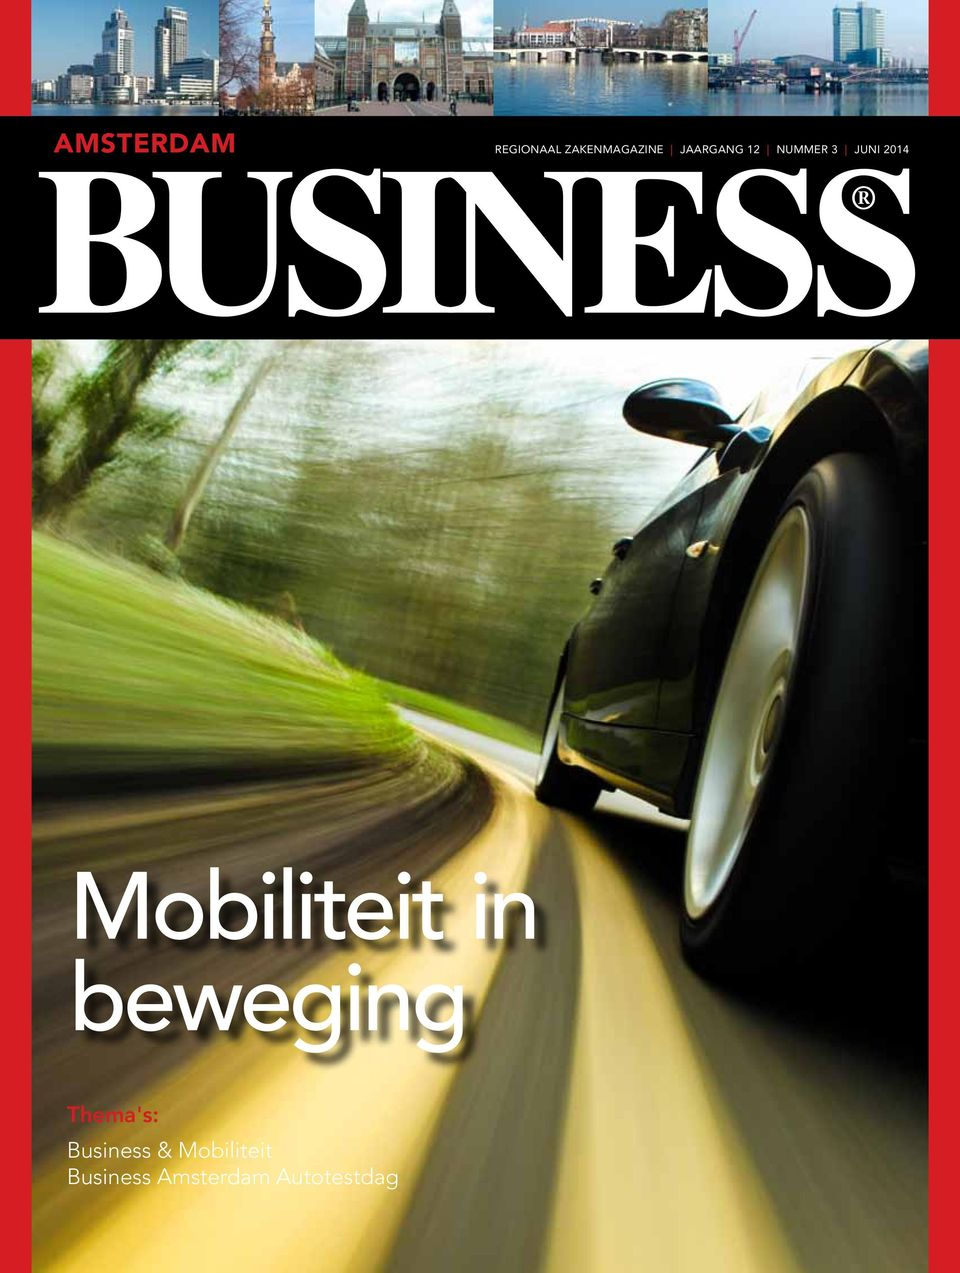 Mobiliteit in beweging Thema's: